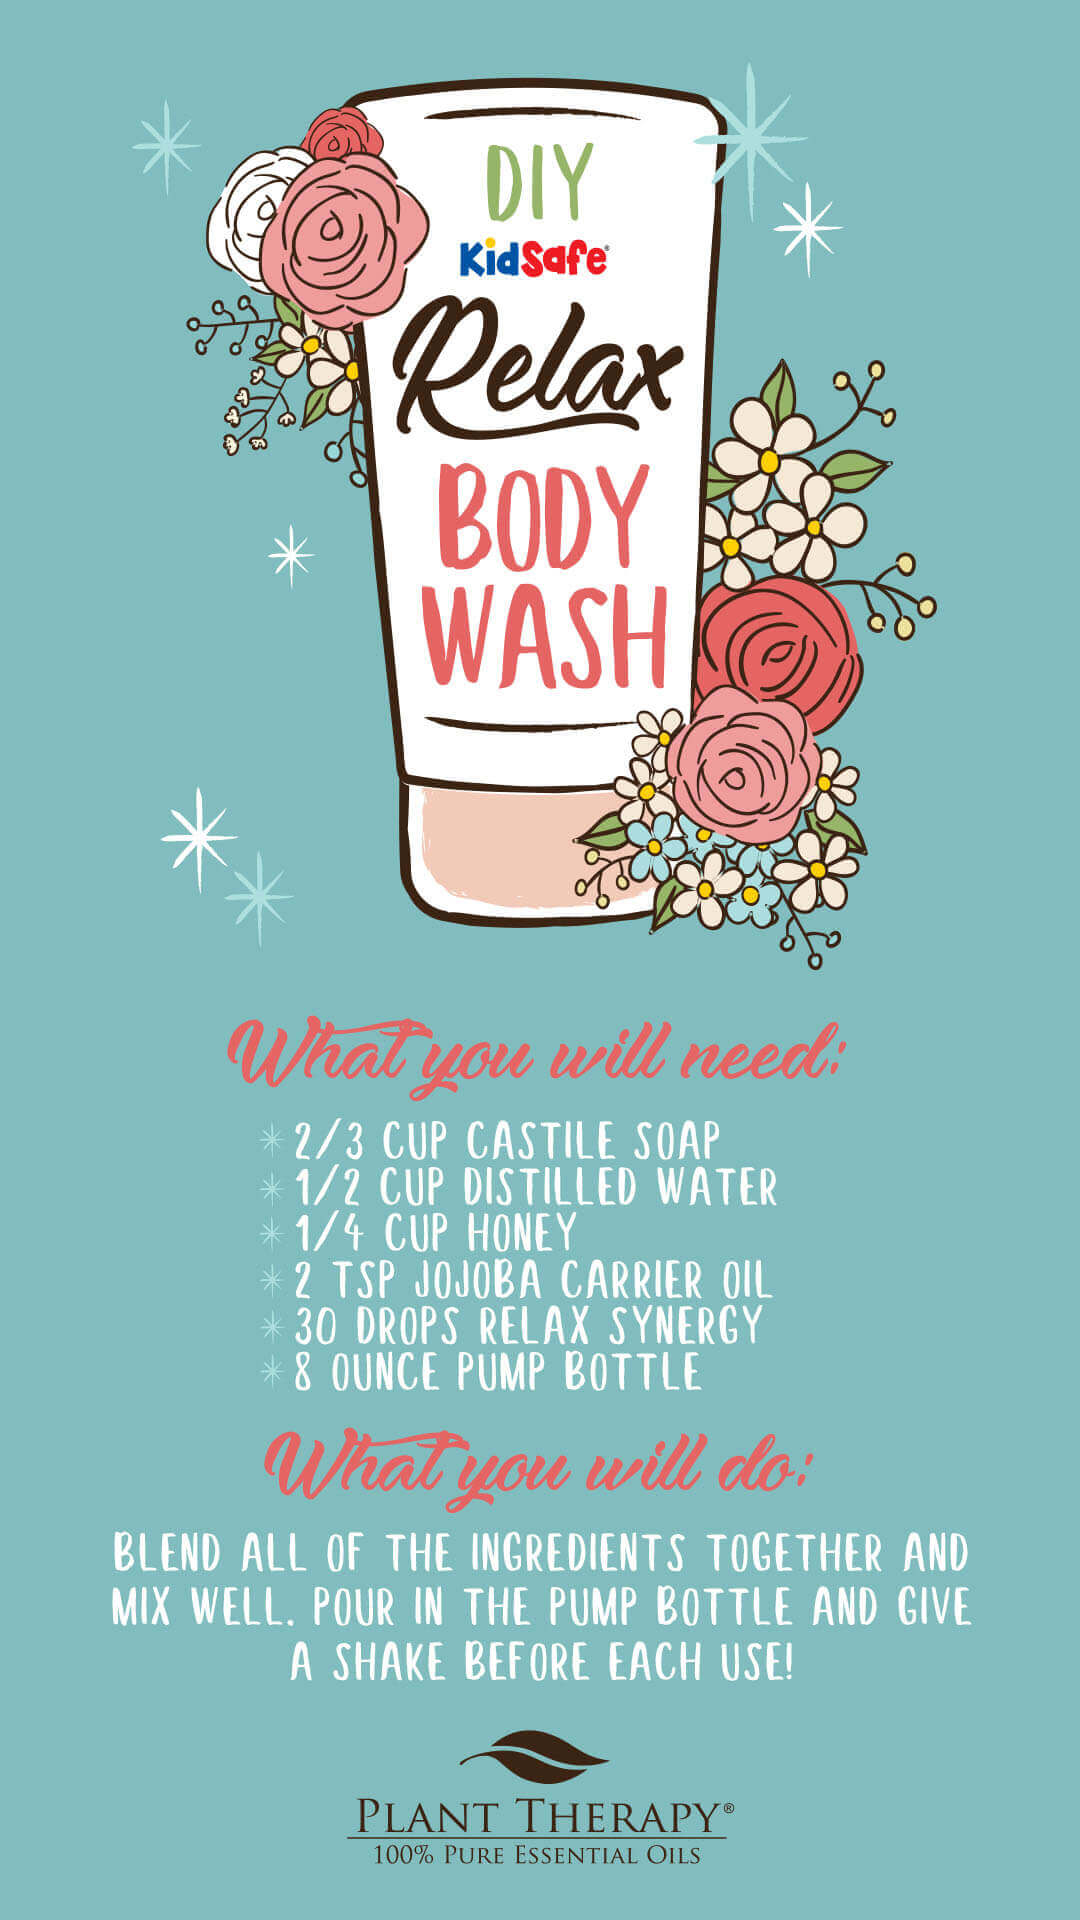 Plant Therapy Relax Body Wash DIY